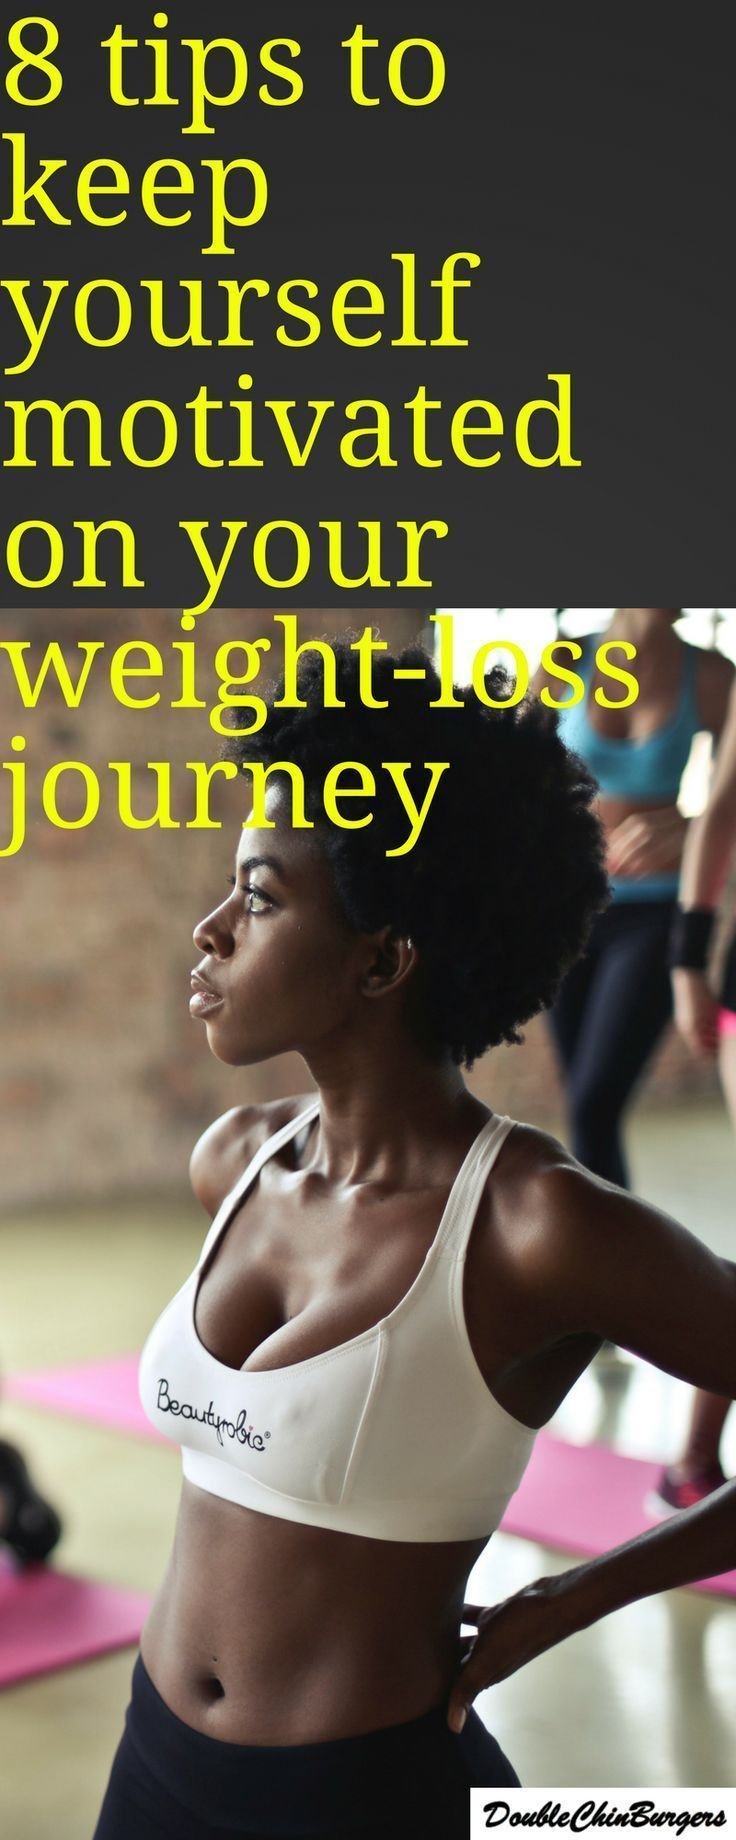 Quick and effective weight loss tips #looseweight  | what is a good way to lose weight fast#weightlo...